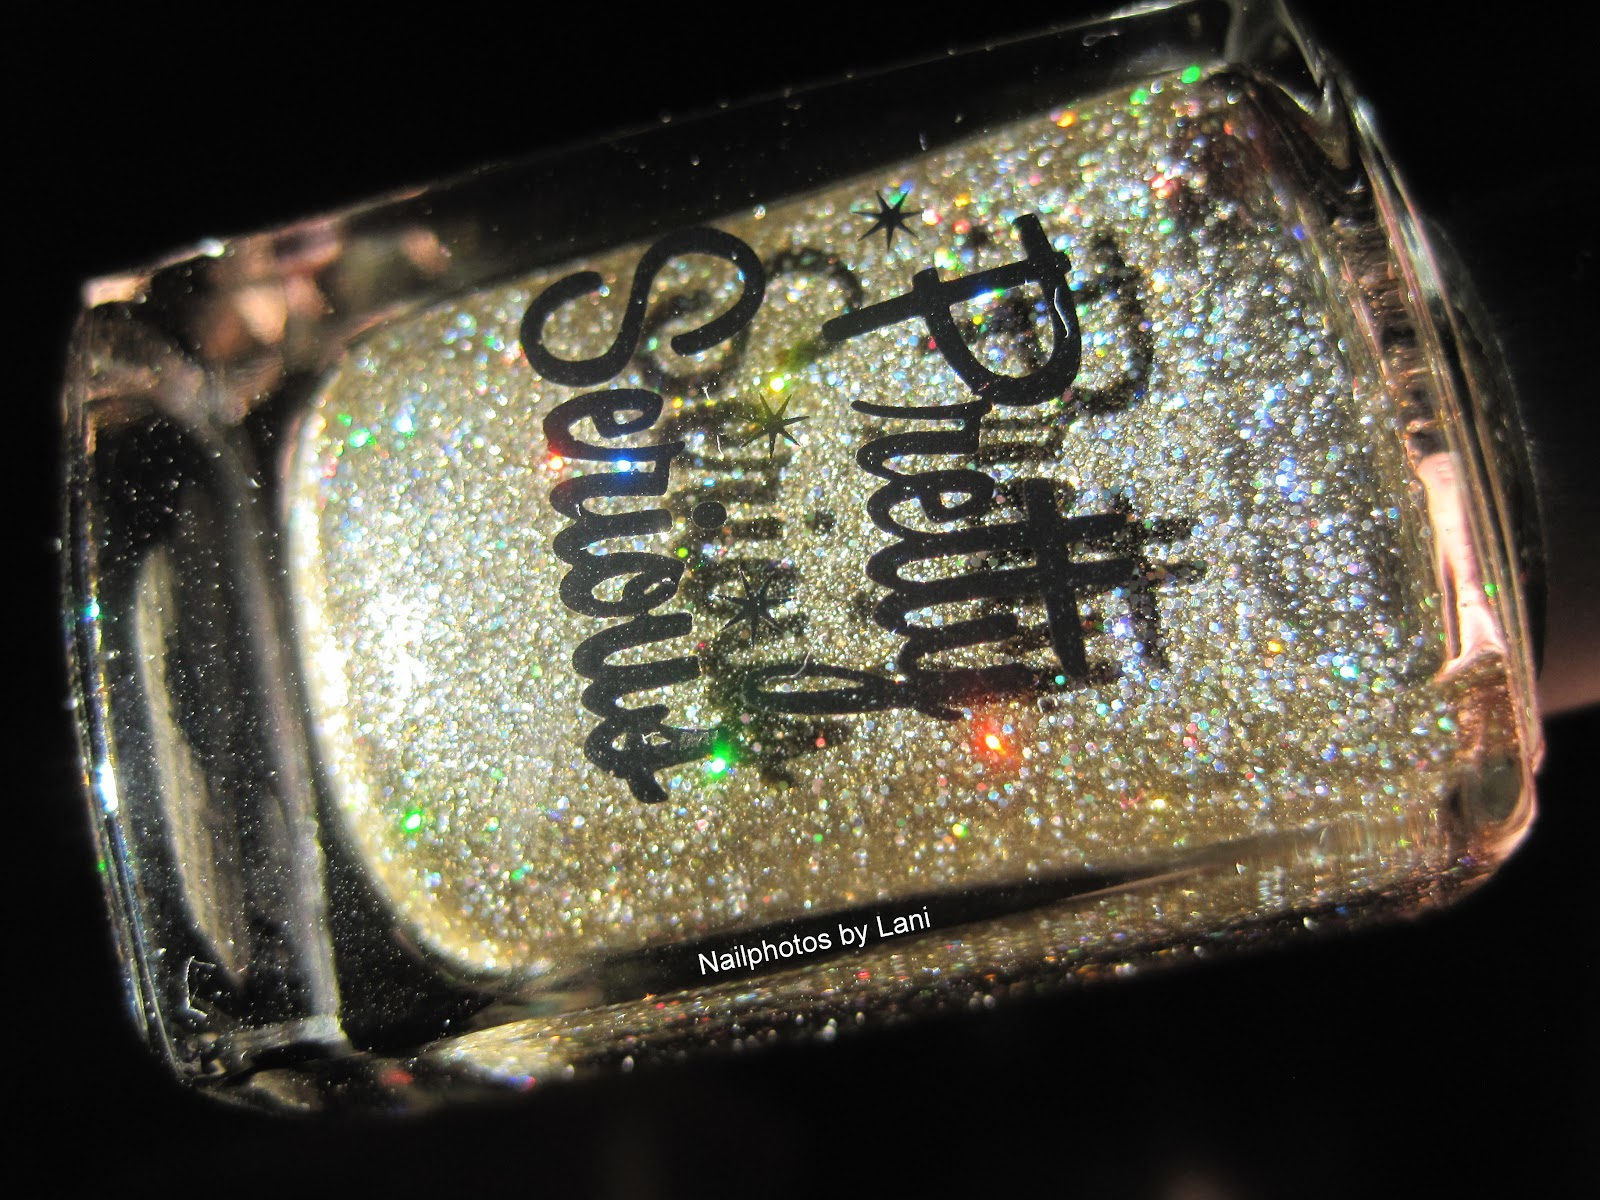 nailphotos by lani back to the future nail polish 88mph from pretty serious. Black Bedroom Furniture Sets. Home Design Ideas